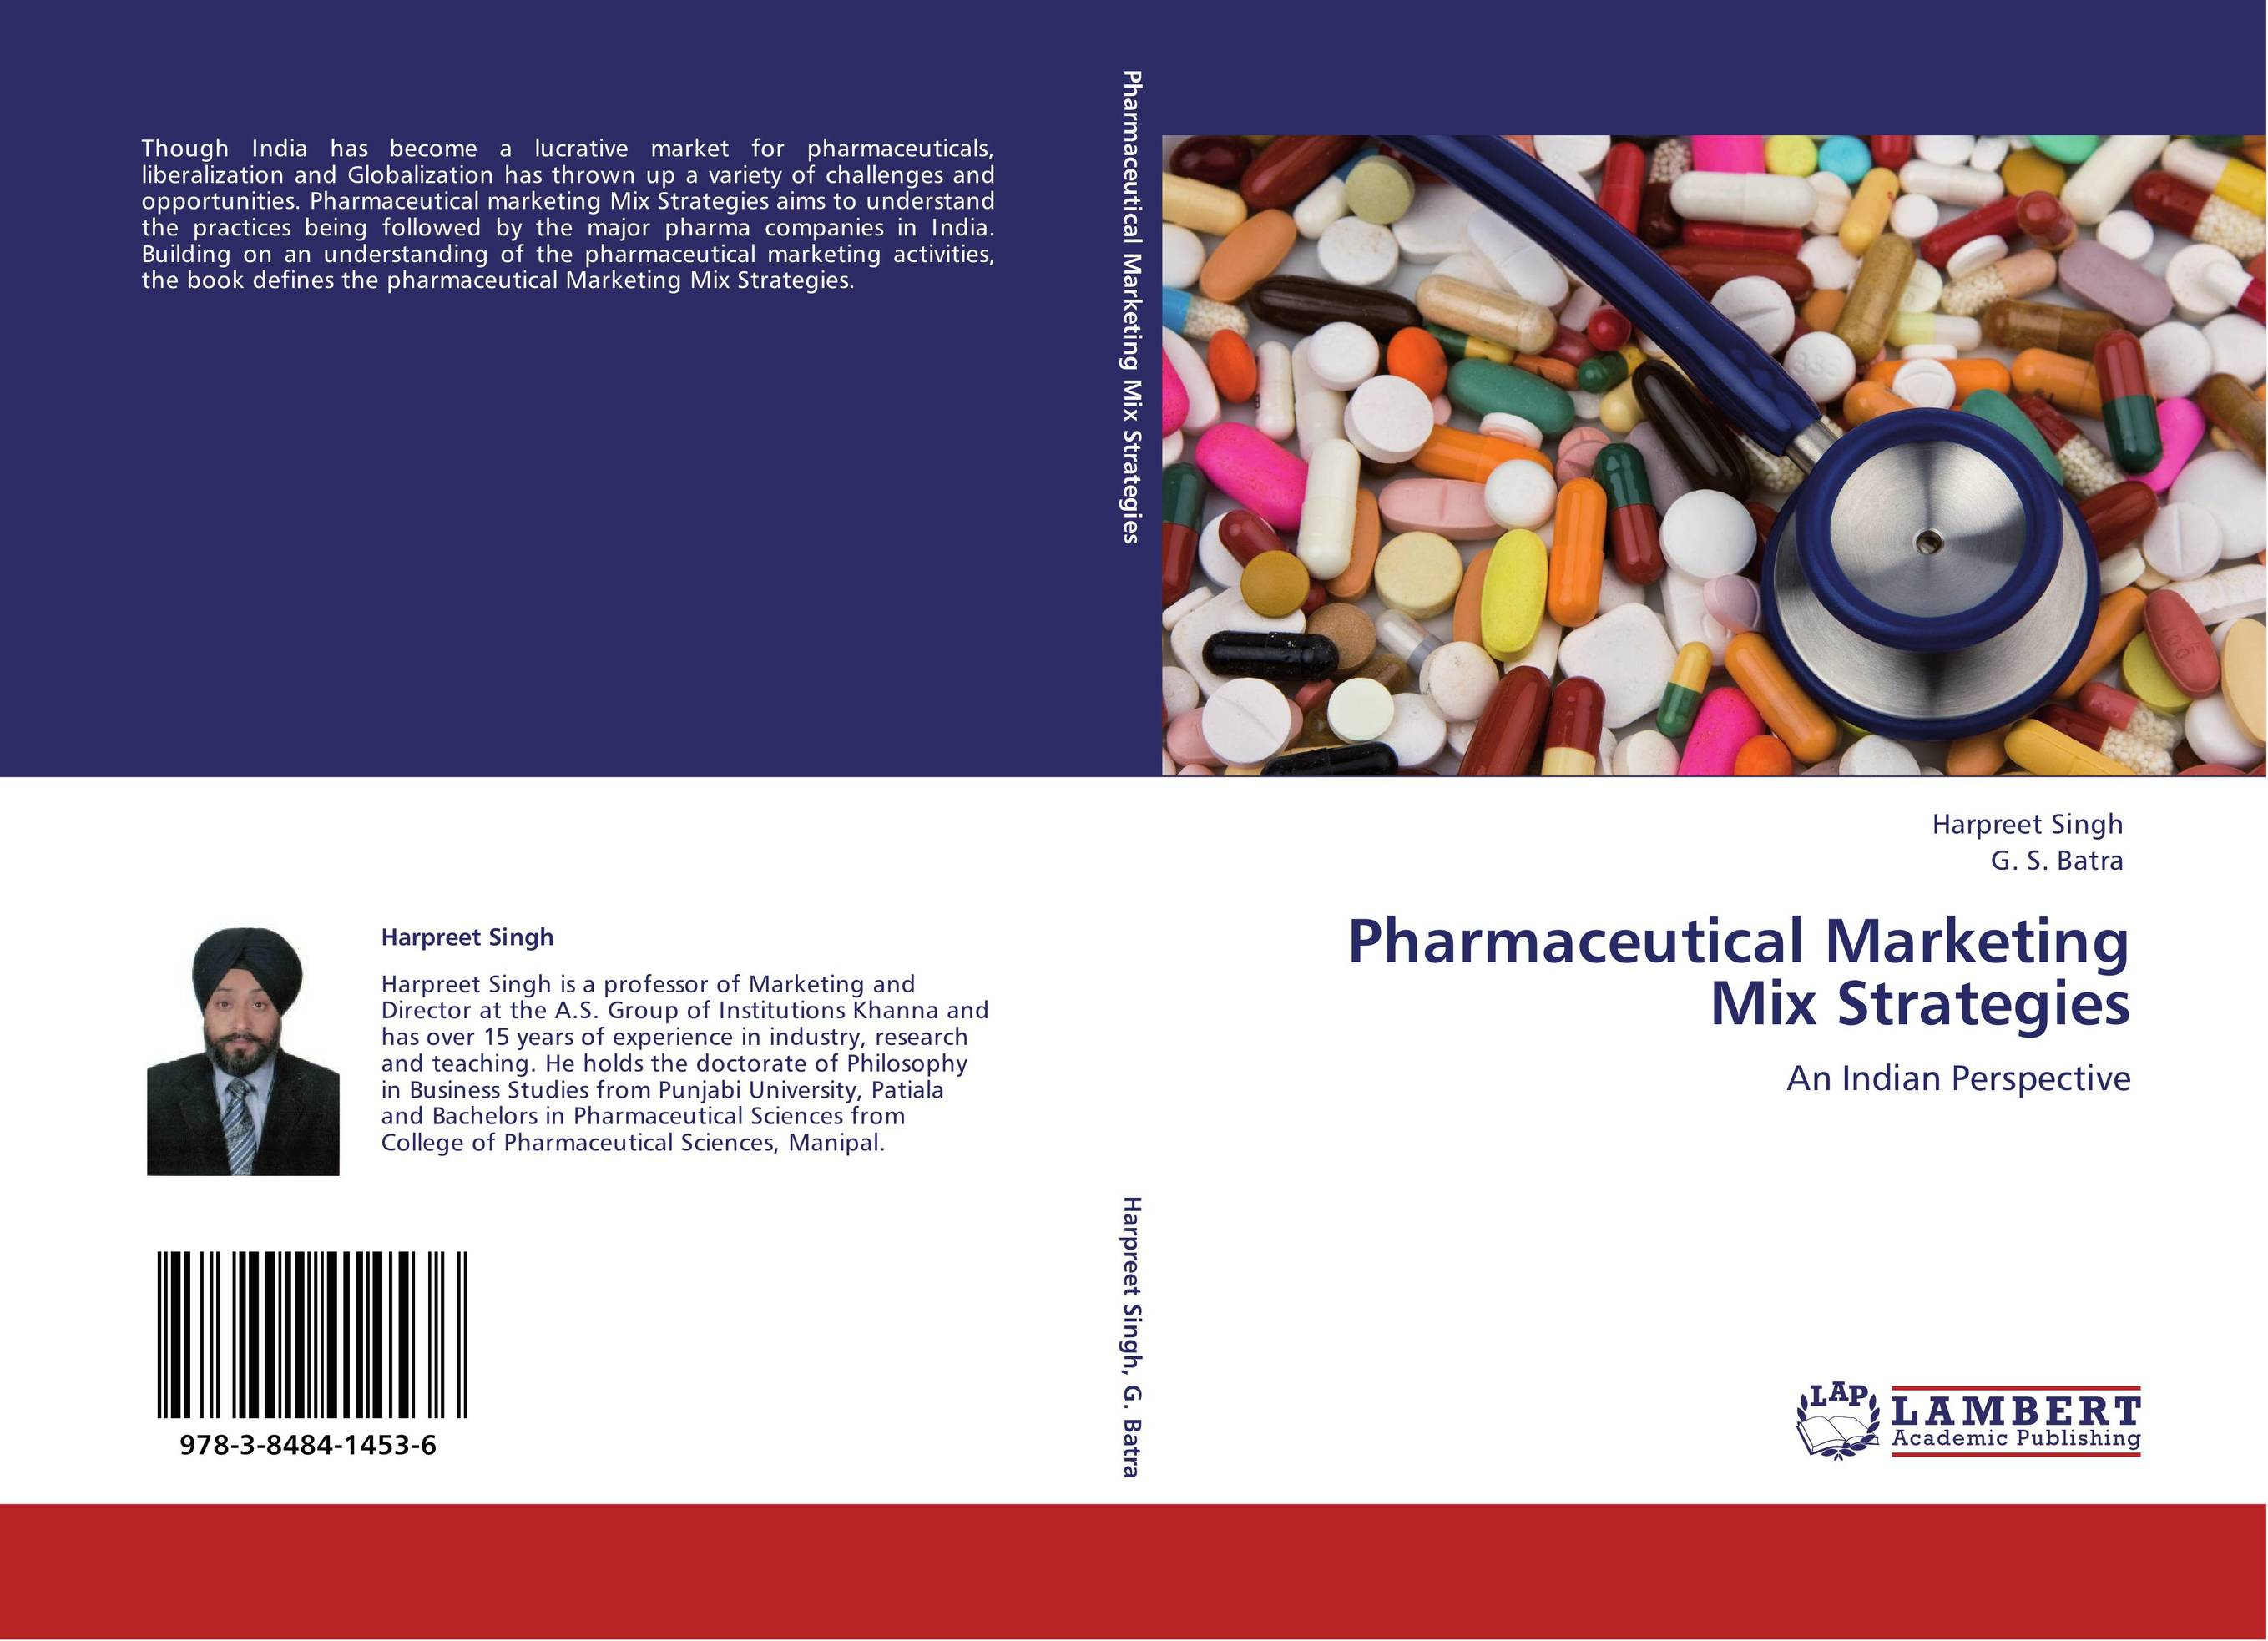 marketing strategies in pharmaceutical industry business essay Strategy - distribution strategy - promotion strategy muhammad ali 12 13 phr_ali91@hotmailcom decision area strategies target market strategy - employee segmenting techniques pharmaceutical market segmentation is a two step process.